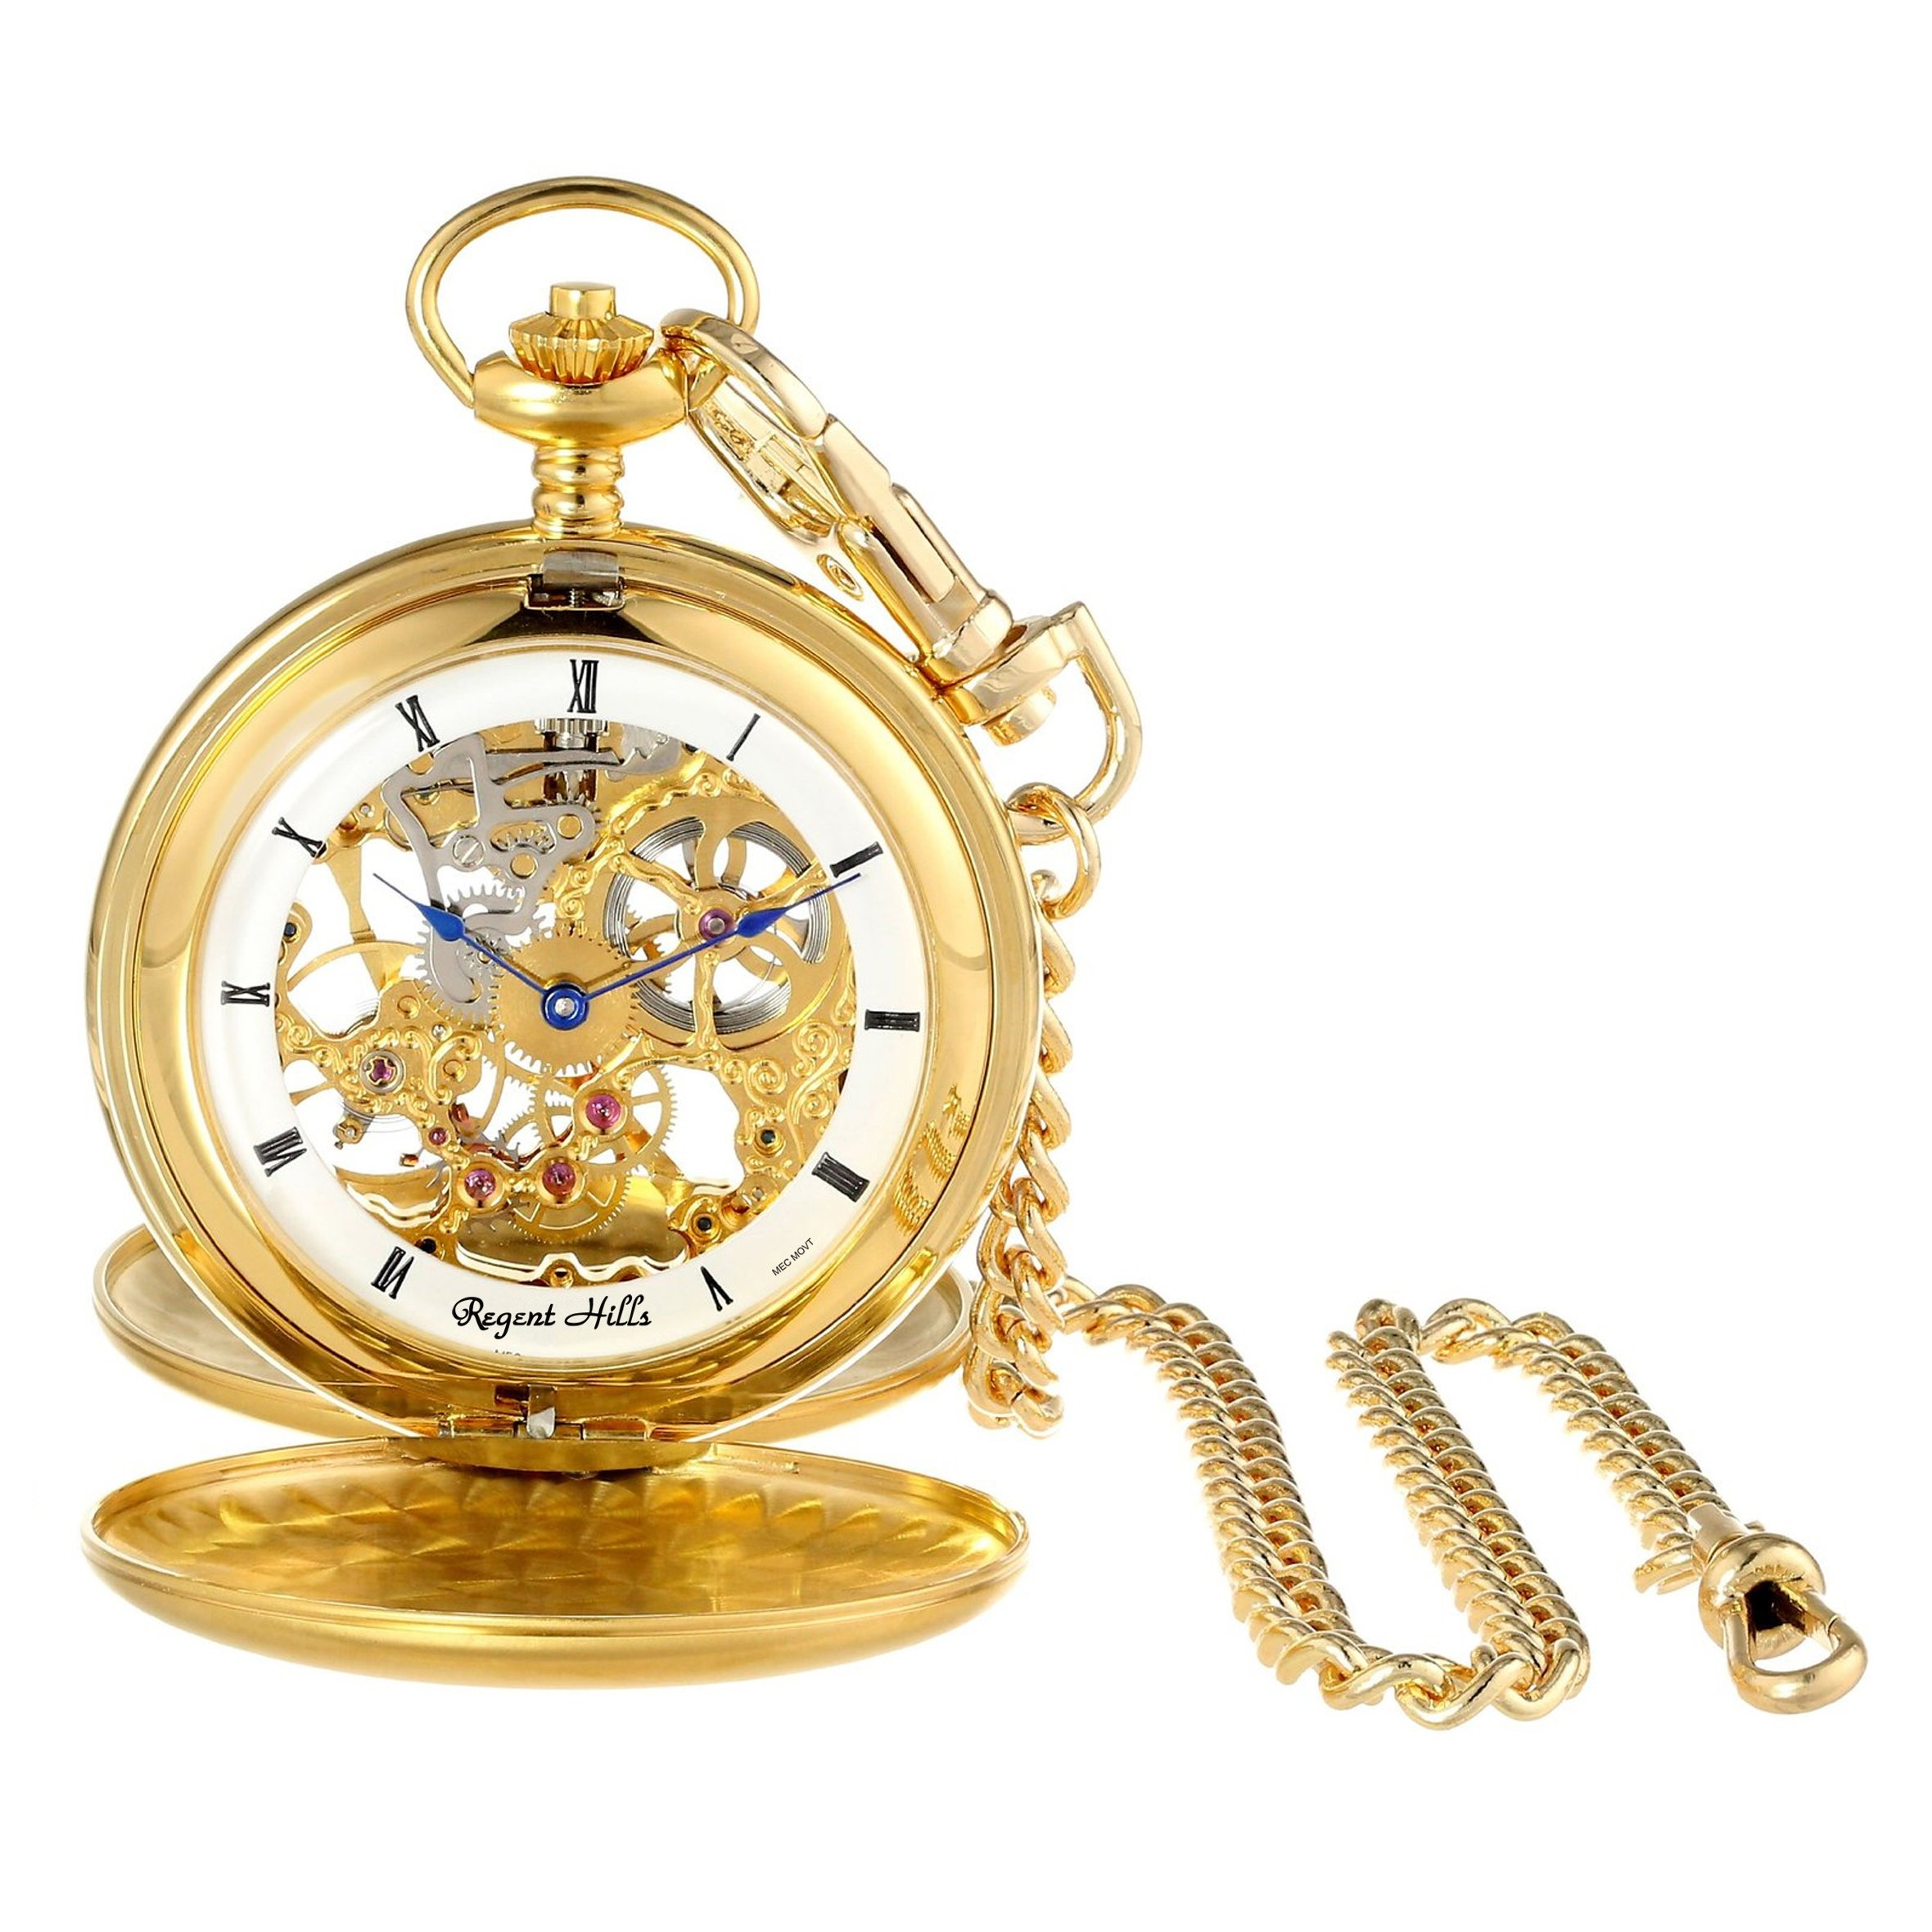 Regent Hills Vintage Gold Plated Mechanical Double Hunter Skeleton Pocket Watch With Chain 67528GP-W2